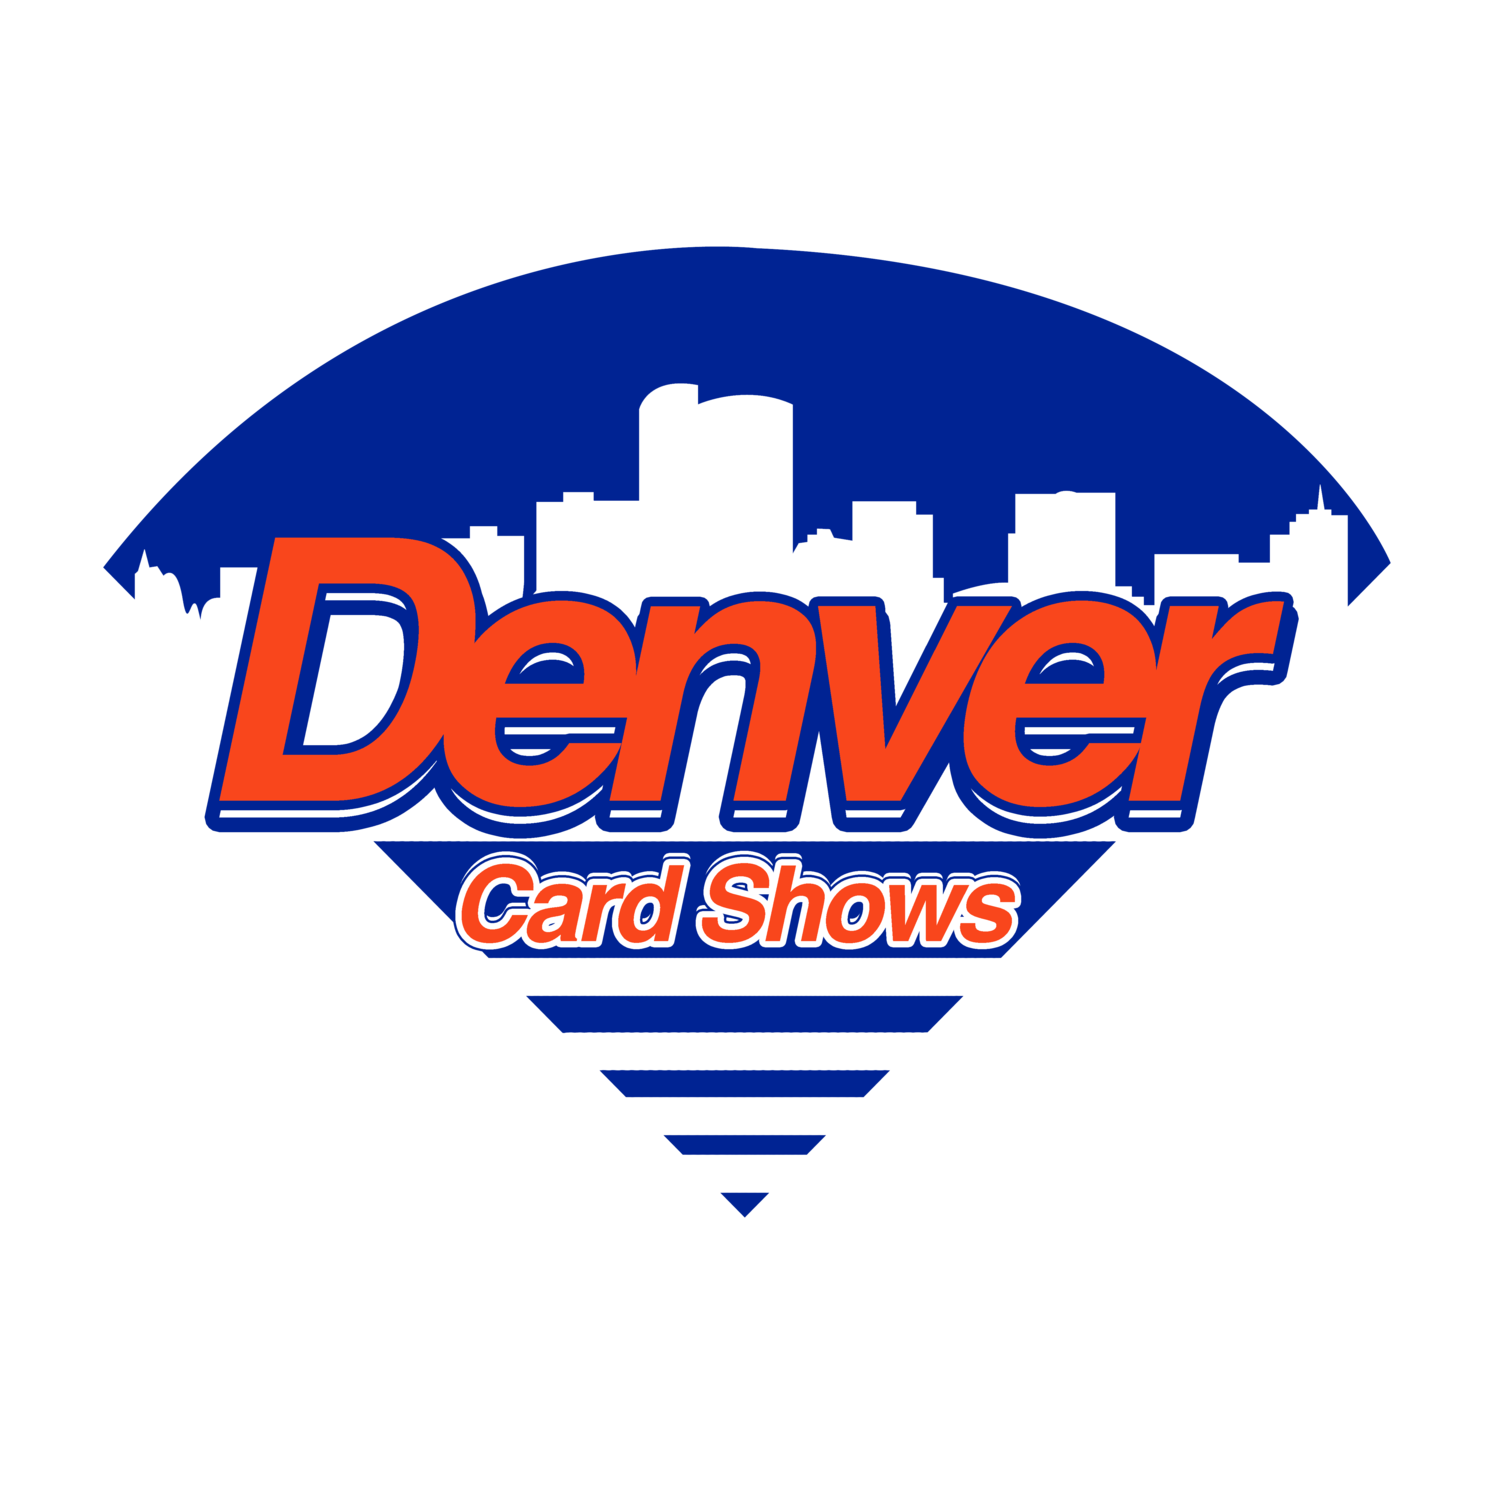 Denver Card Shows